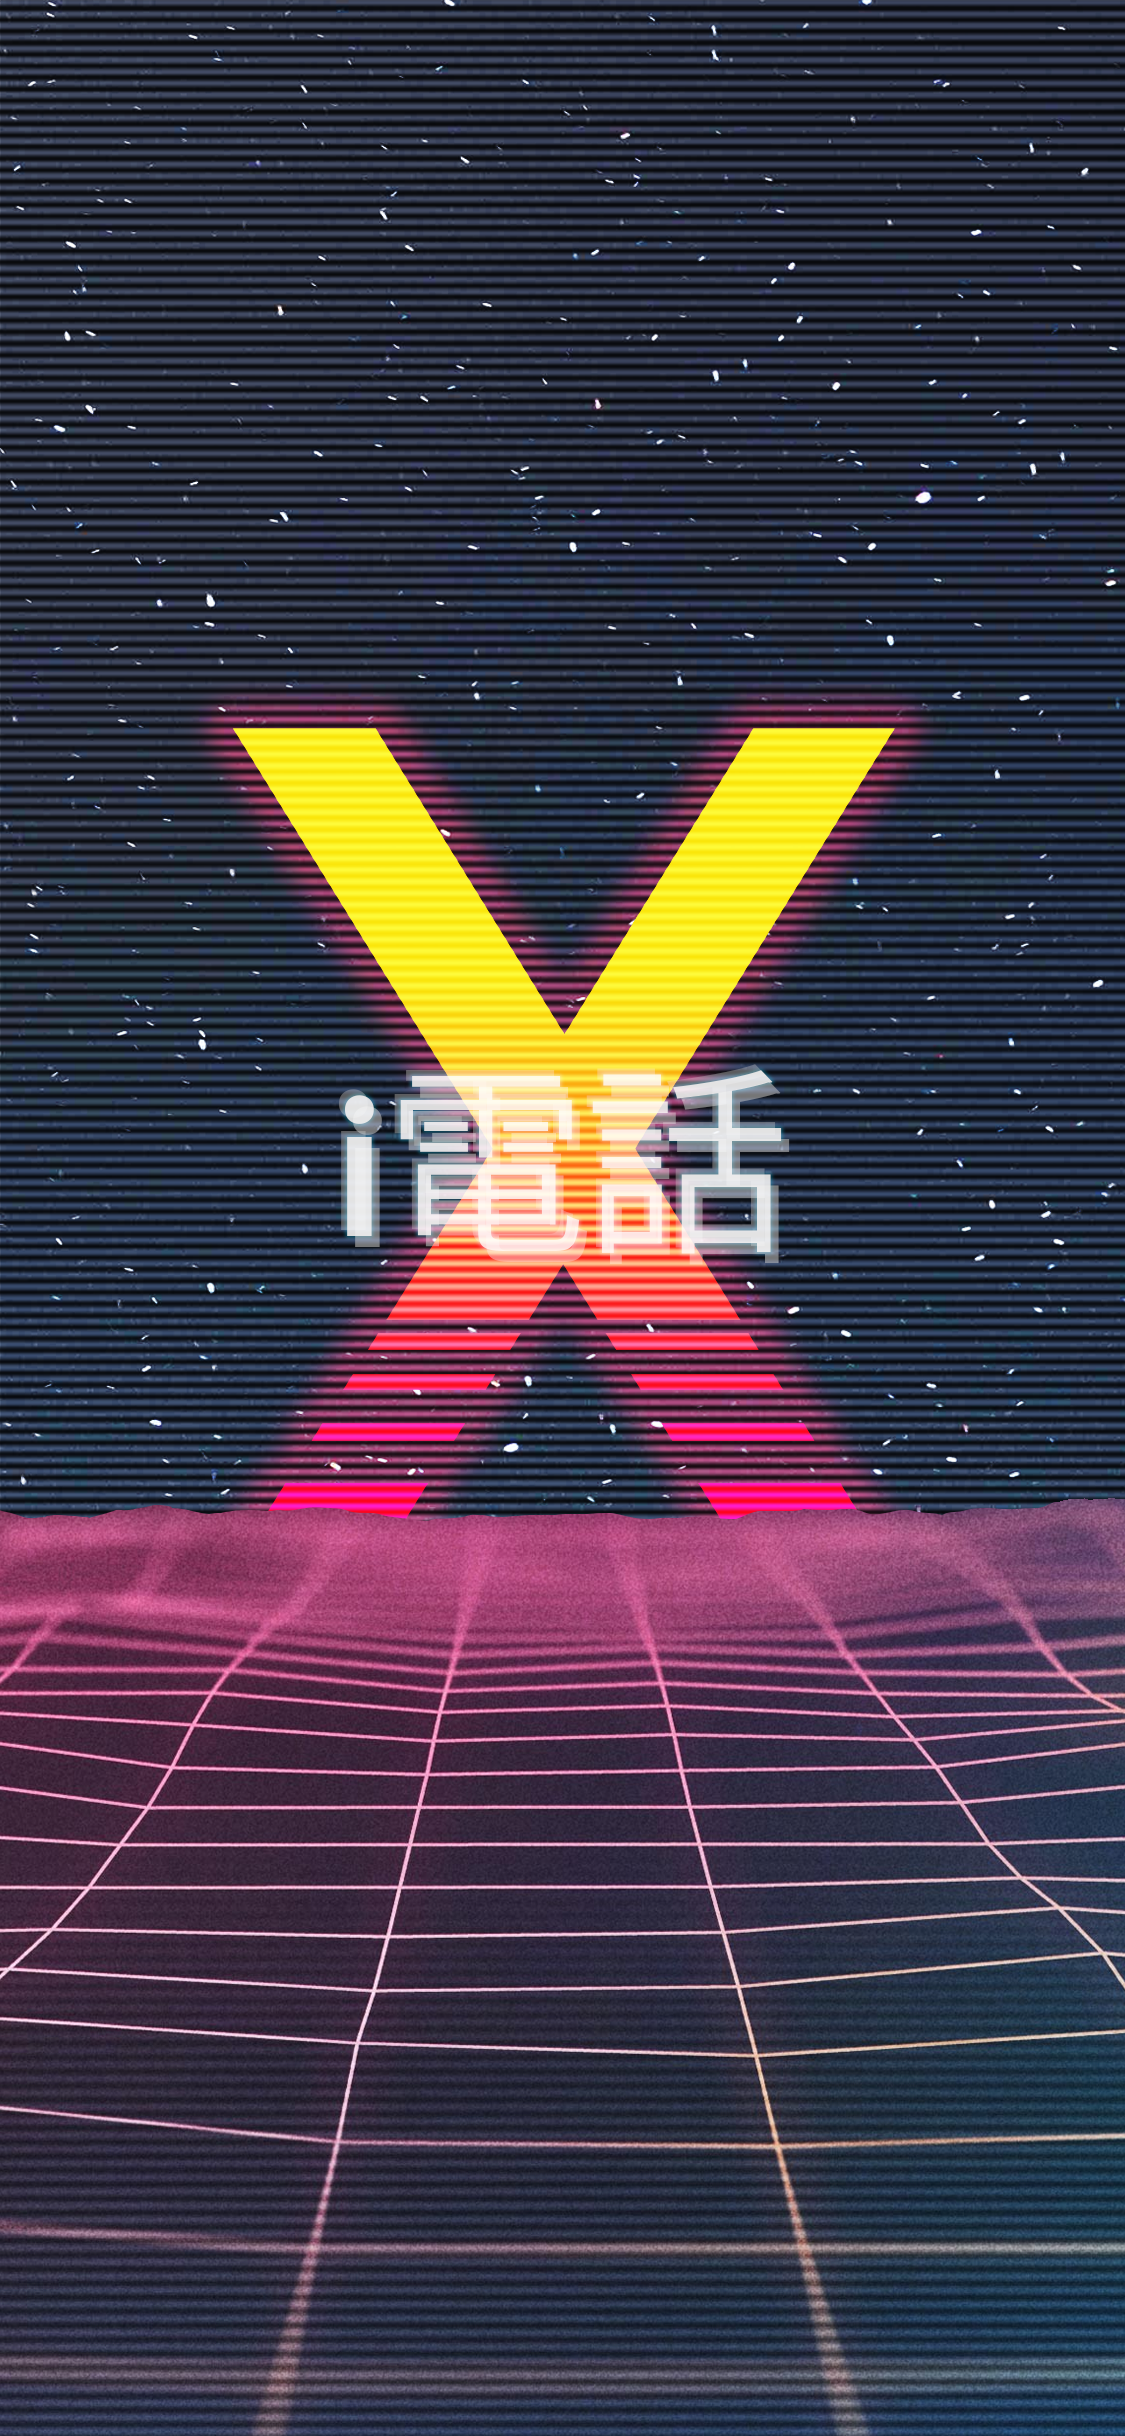 iPhone X (VaporWave) [2436 x 1125]